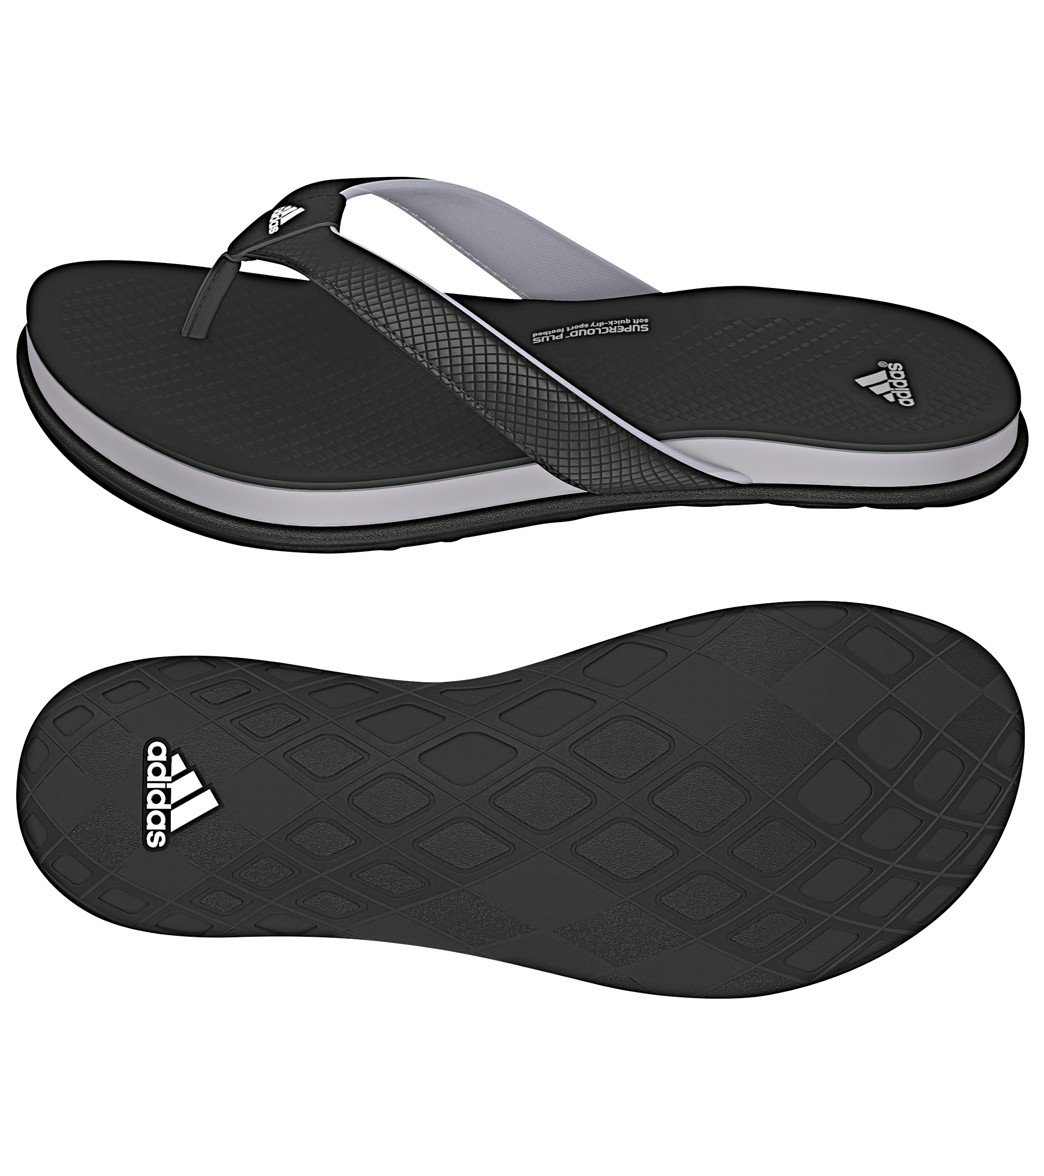 b110d3b6f Share. Share on Facebook · Tweet on Twitter · Pin on Pinterest. Visit  Product Page close X. Adidas Women s Supercloud Plus Flip Flop